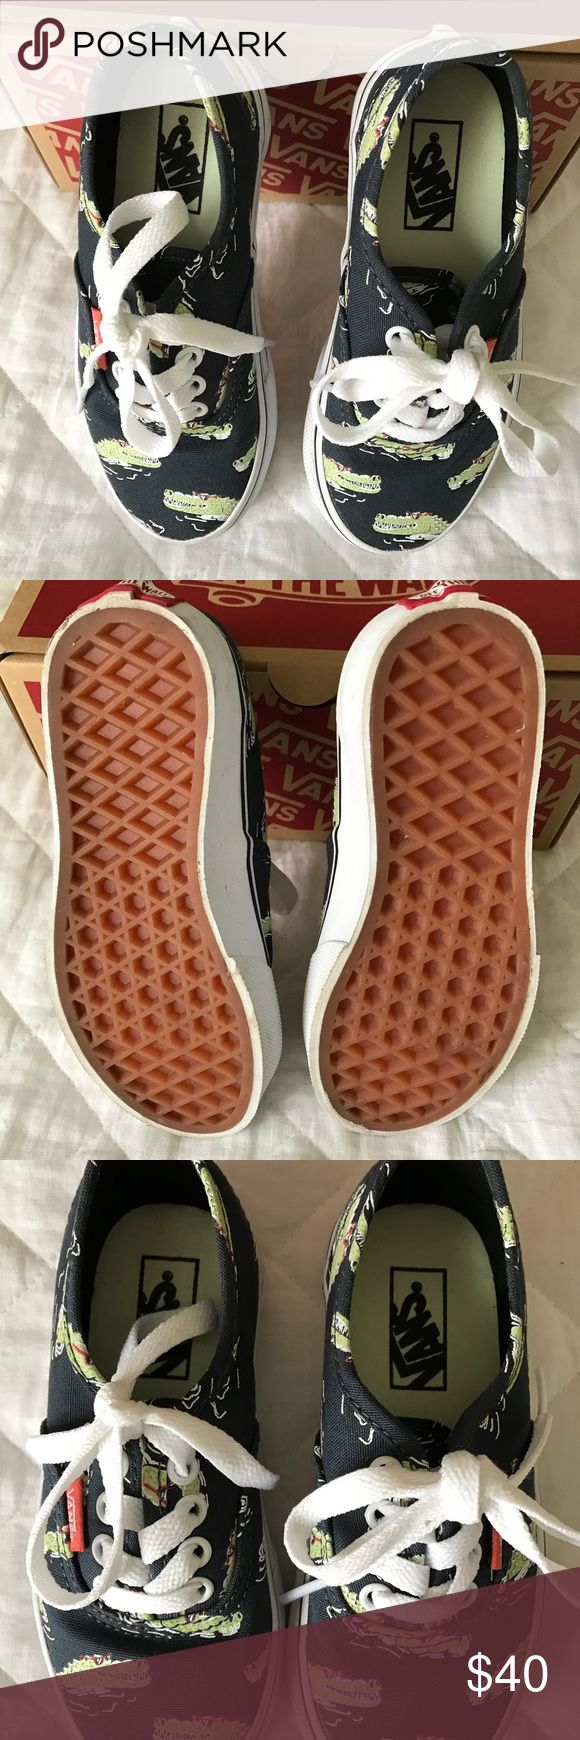 Vans Glow in the Dark Crocodile sneakers size 11 New! Vans Off the Wall - Glow in the Dark Crocodile/Alligator sneakers, youth size 11. Dark blue with glow in the dark crocodiles/alligators. Come from smoke and pet free home. Vans Shoes Sneakers